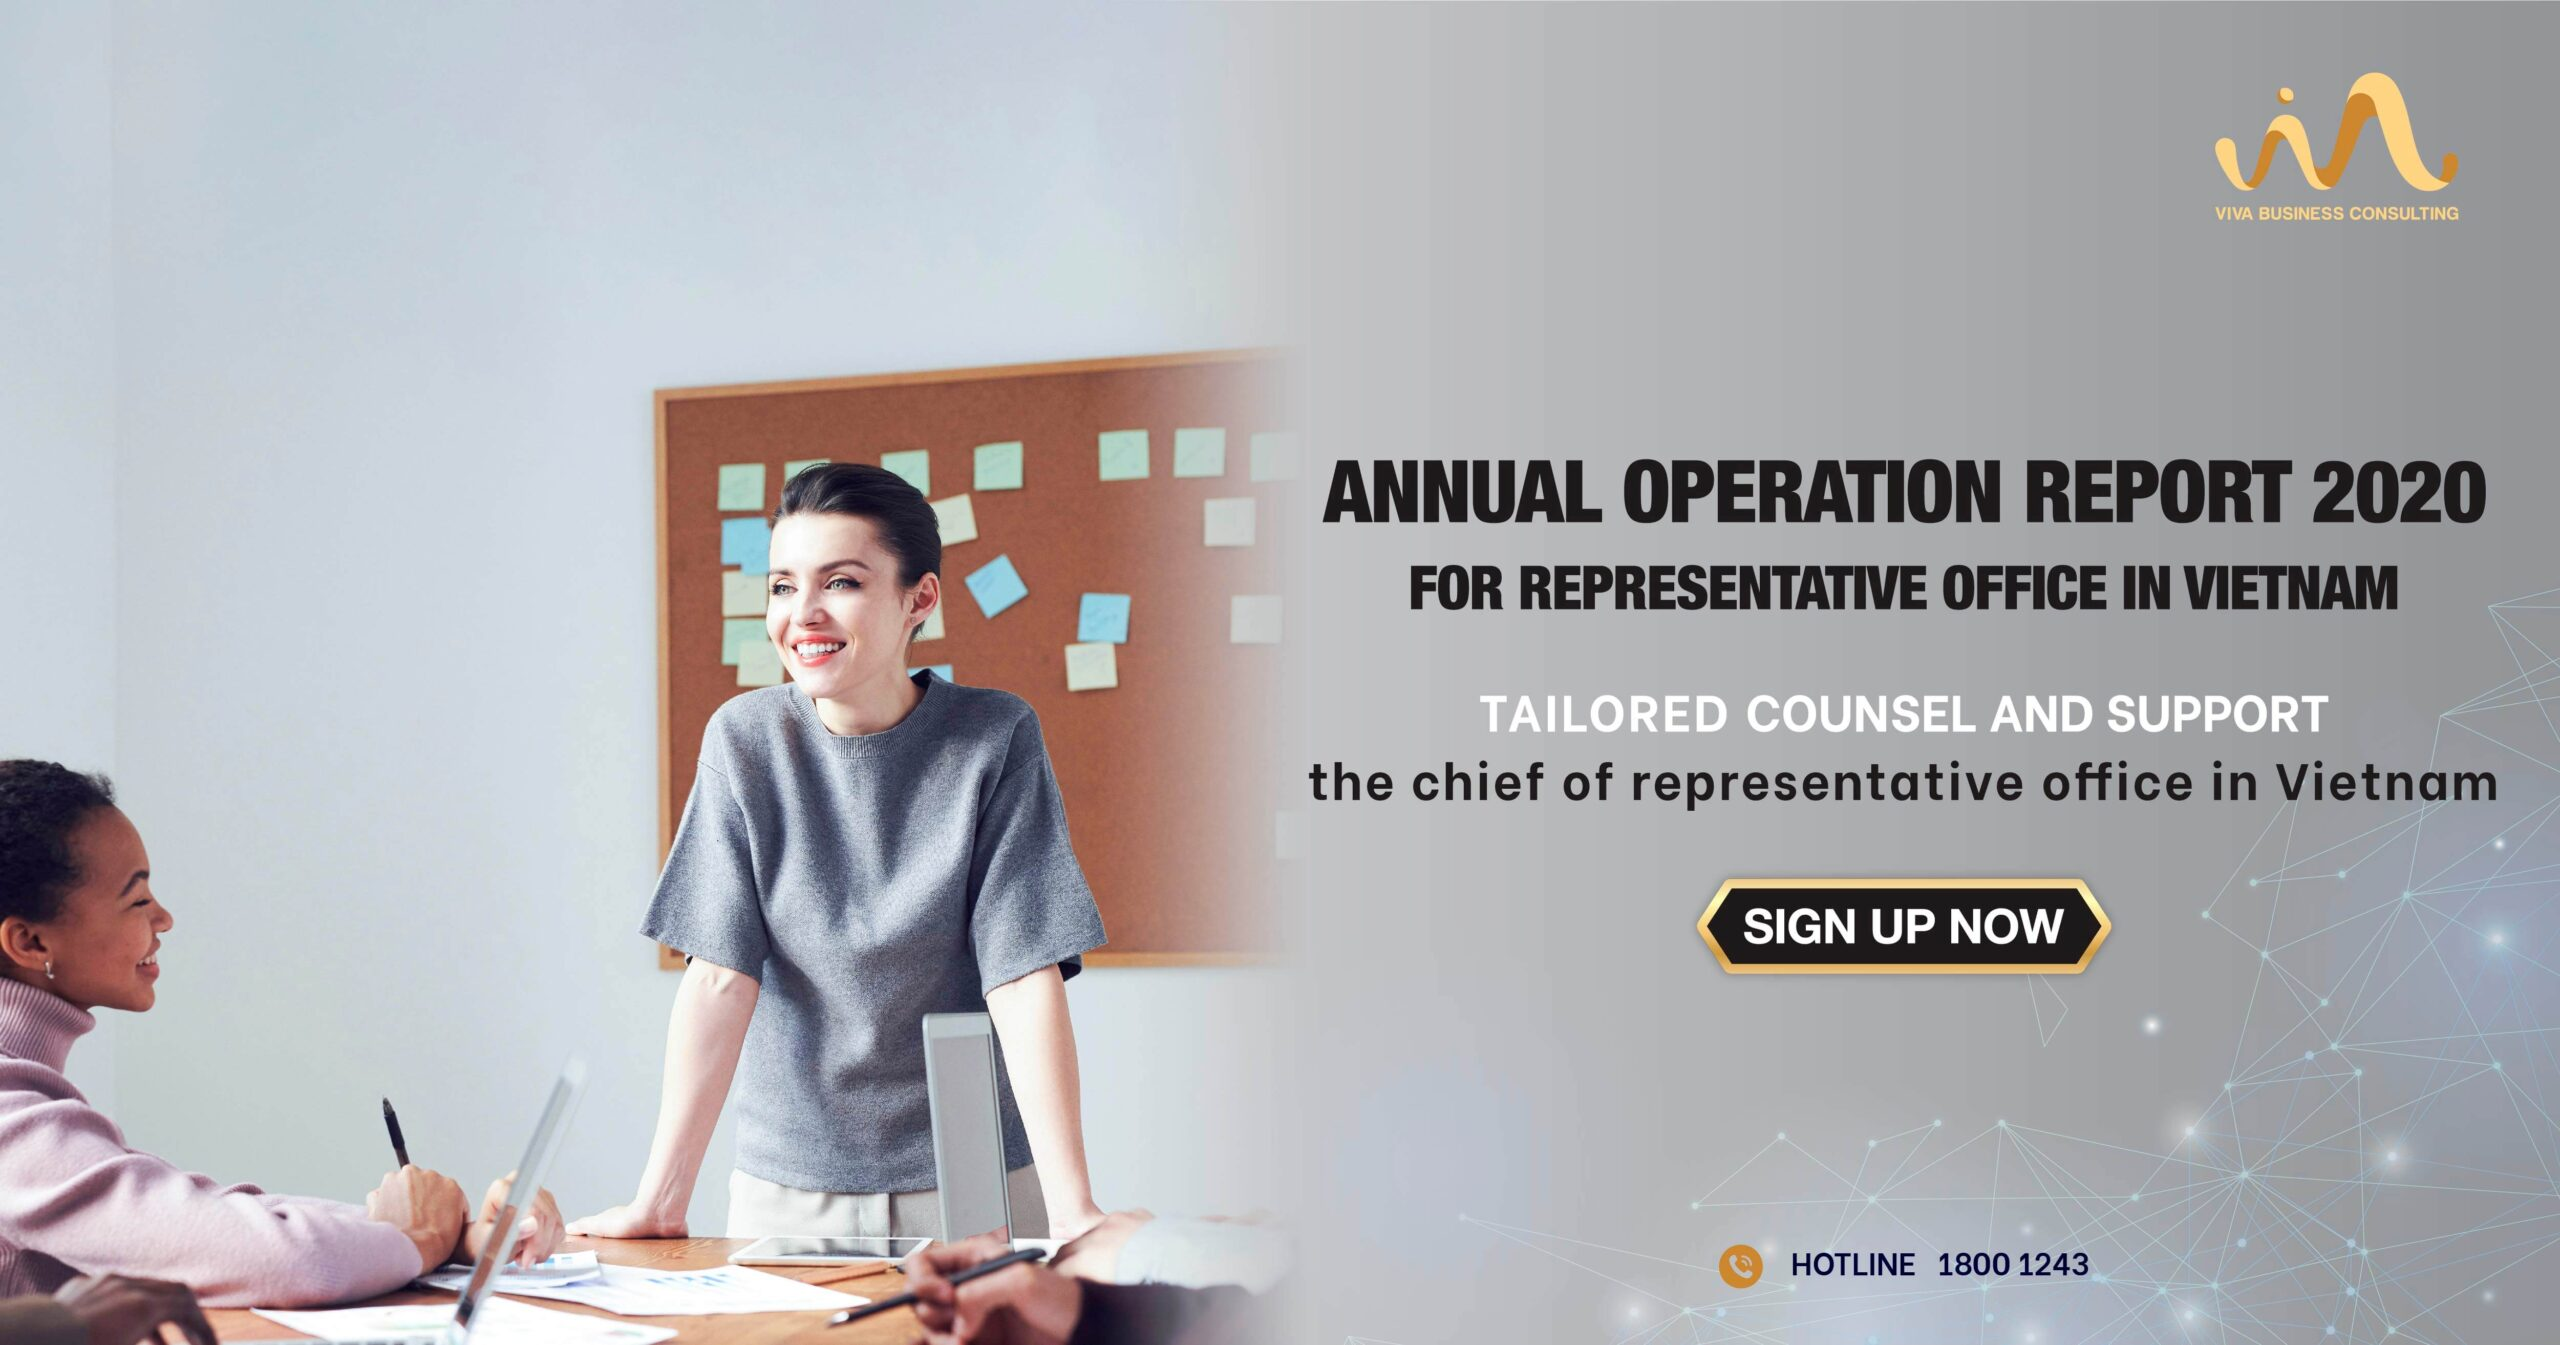 Annual Operation Report End Year 2020 for Representative Office